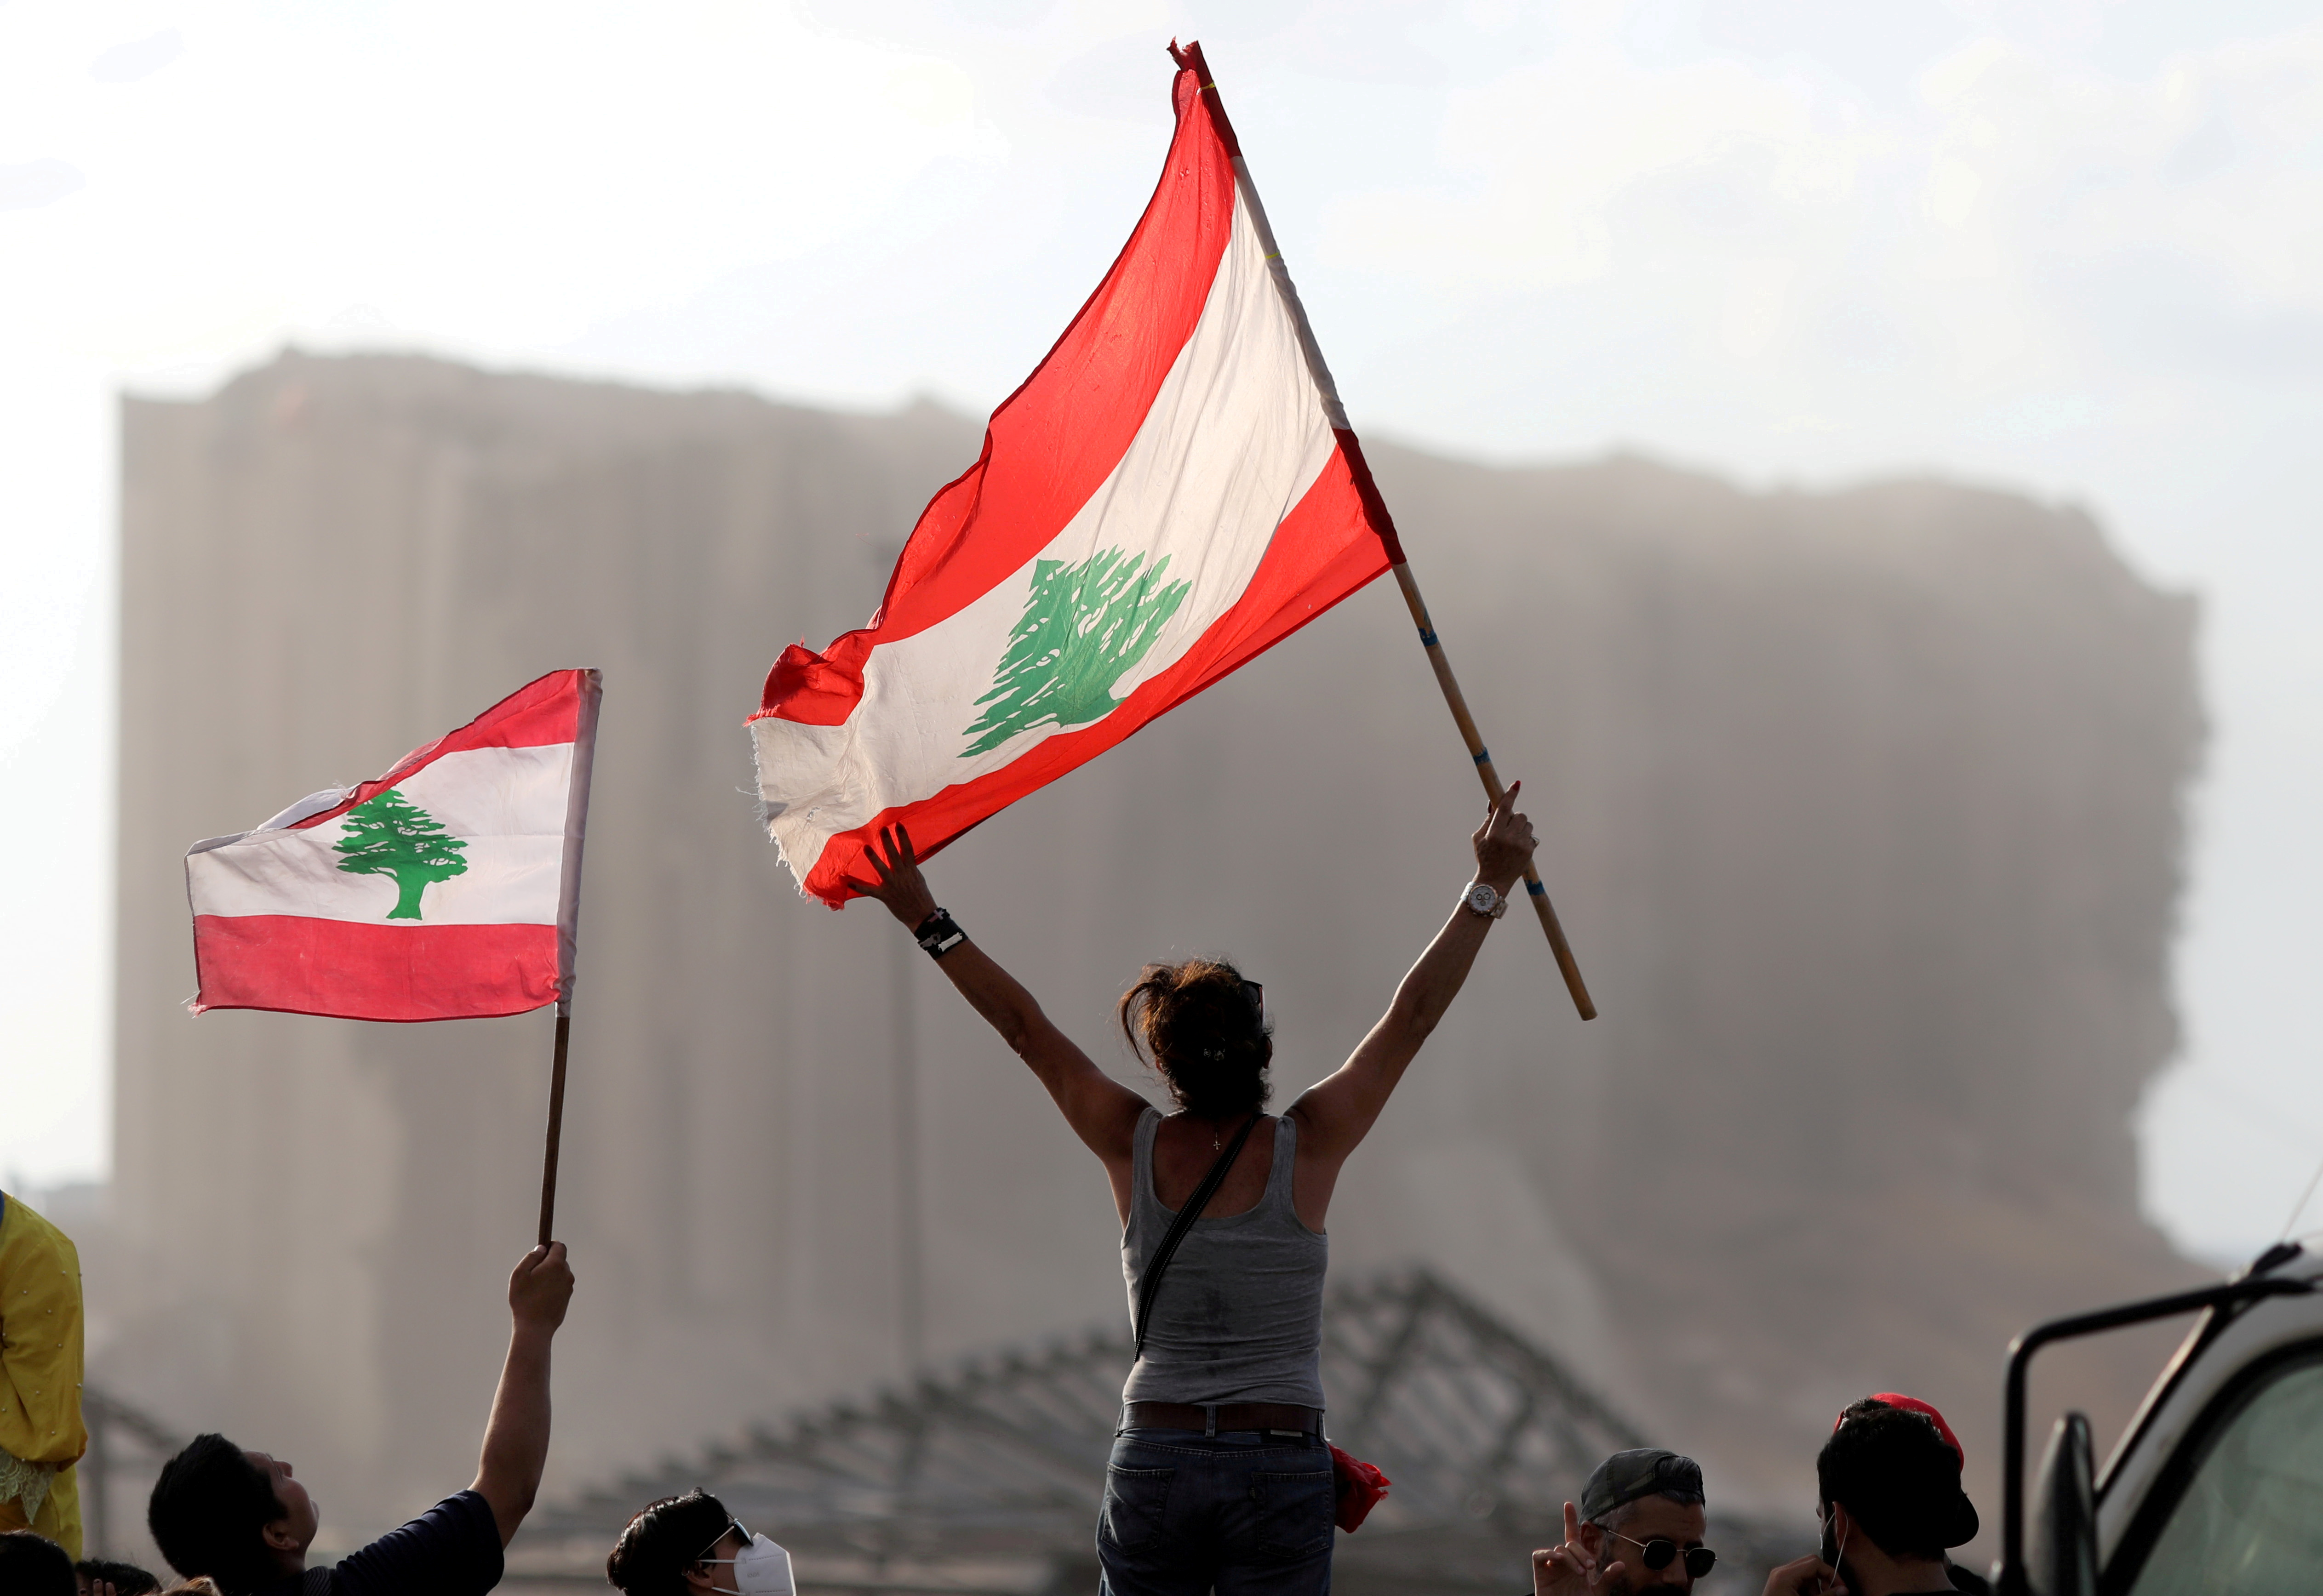 Demonstrators wave Lebanese flags during protests near the site of a blast at Beirut's port area, Lebanon August 11, 2020. REUTERS/Goran Tomasevic/File Photo